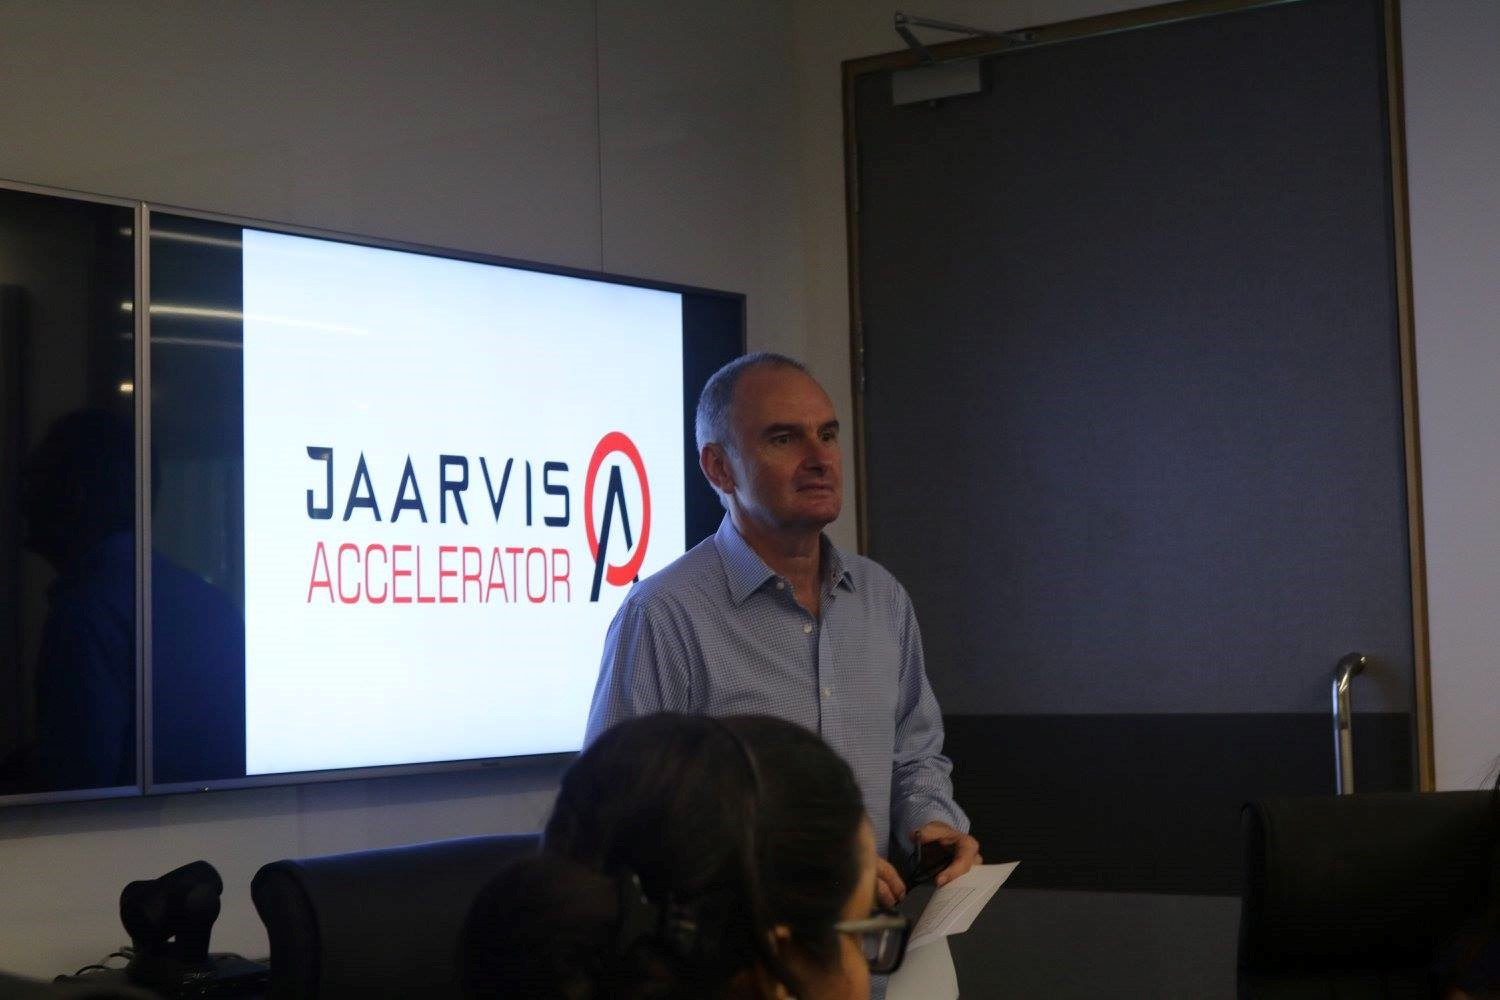 jaarvis her pitch 1